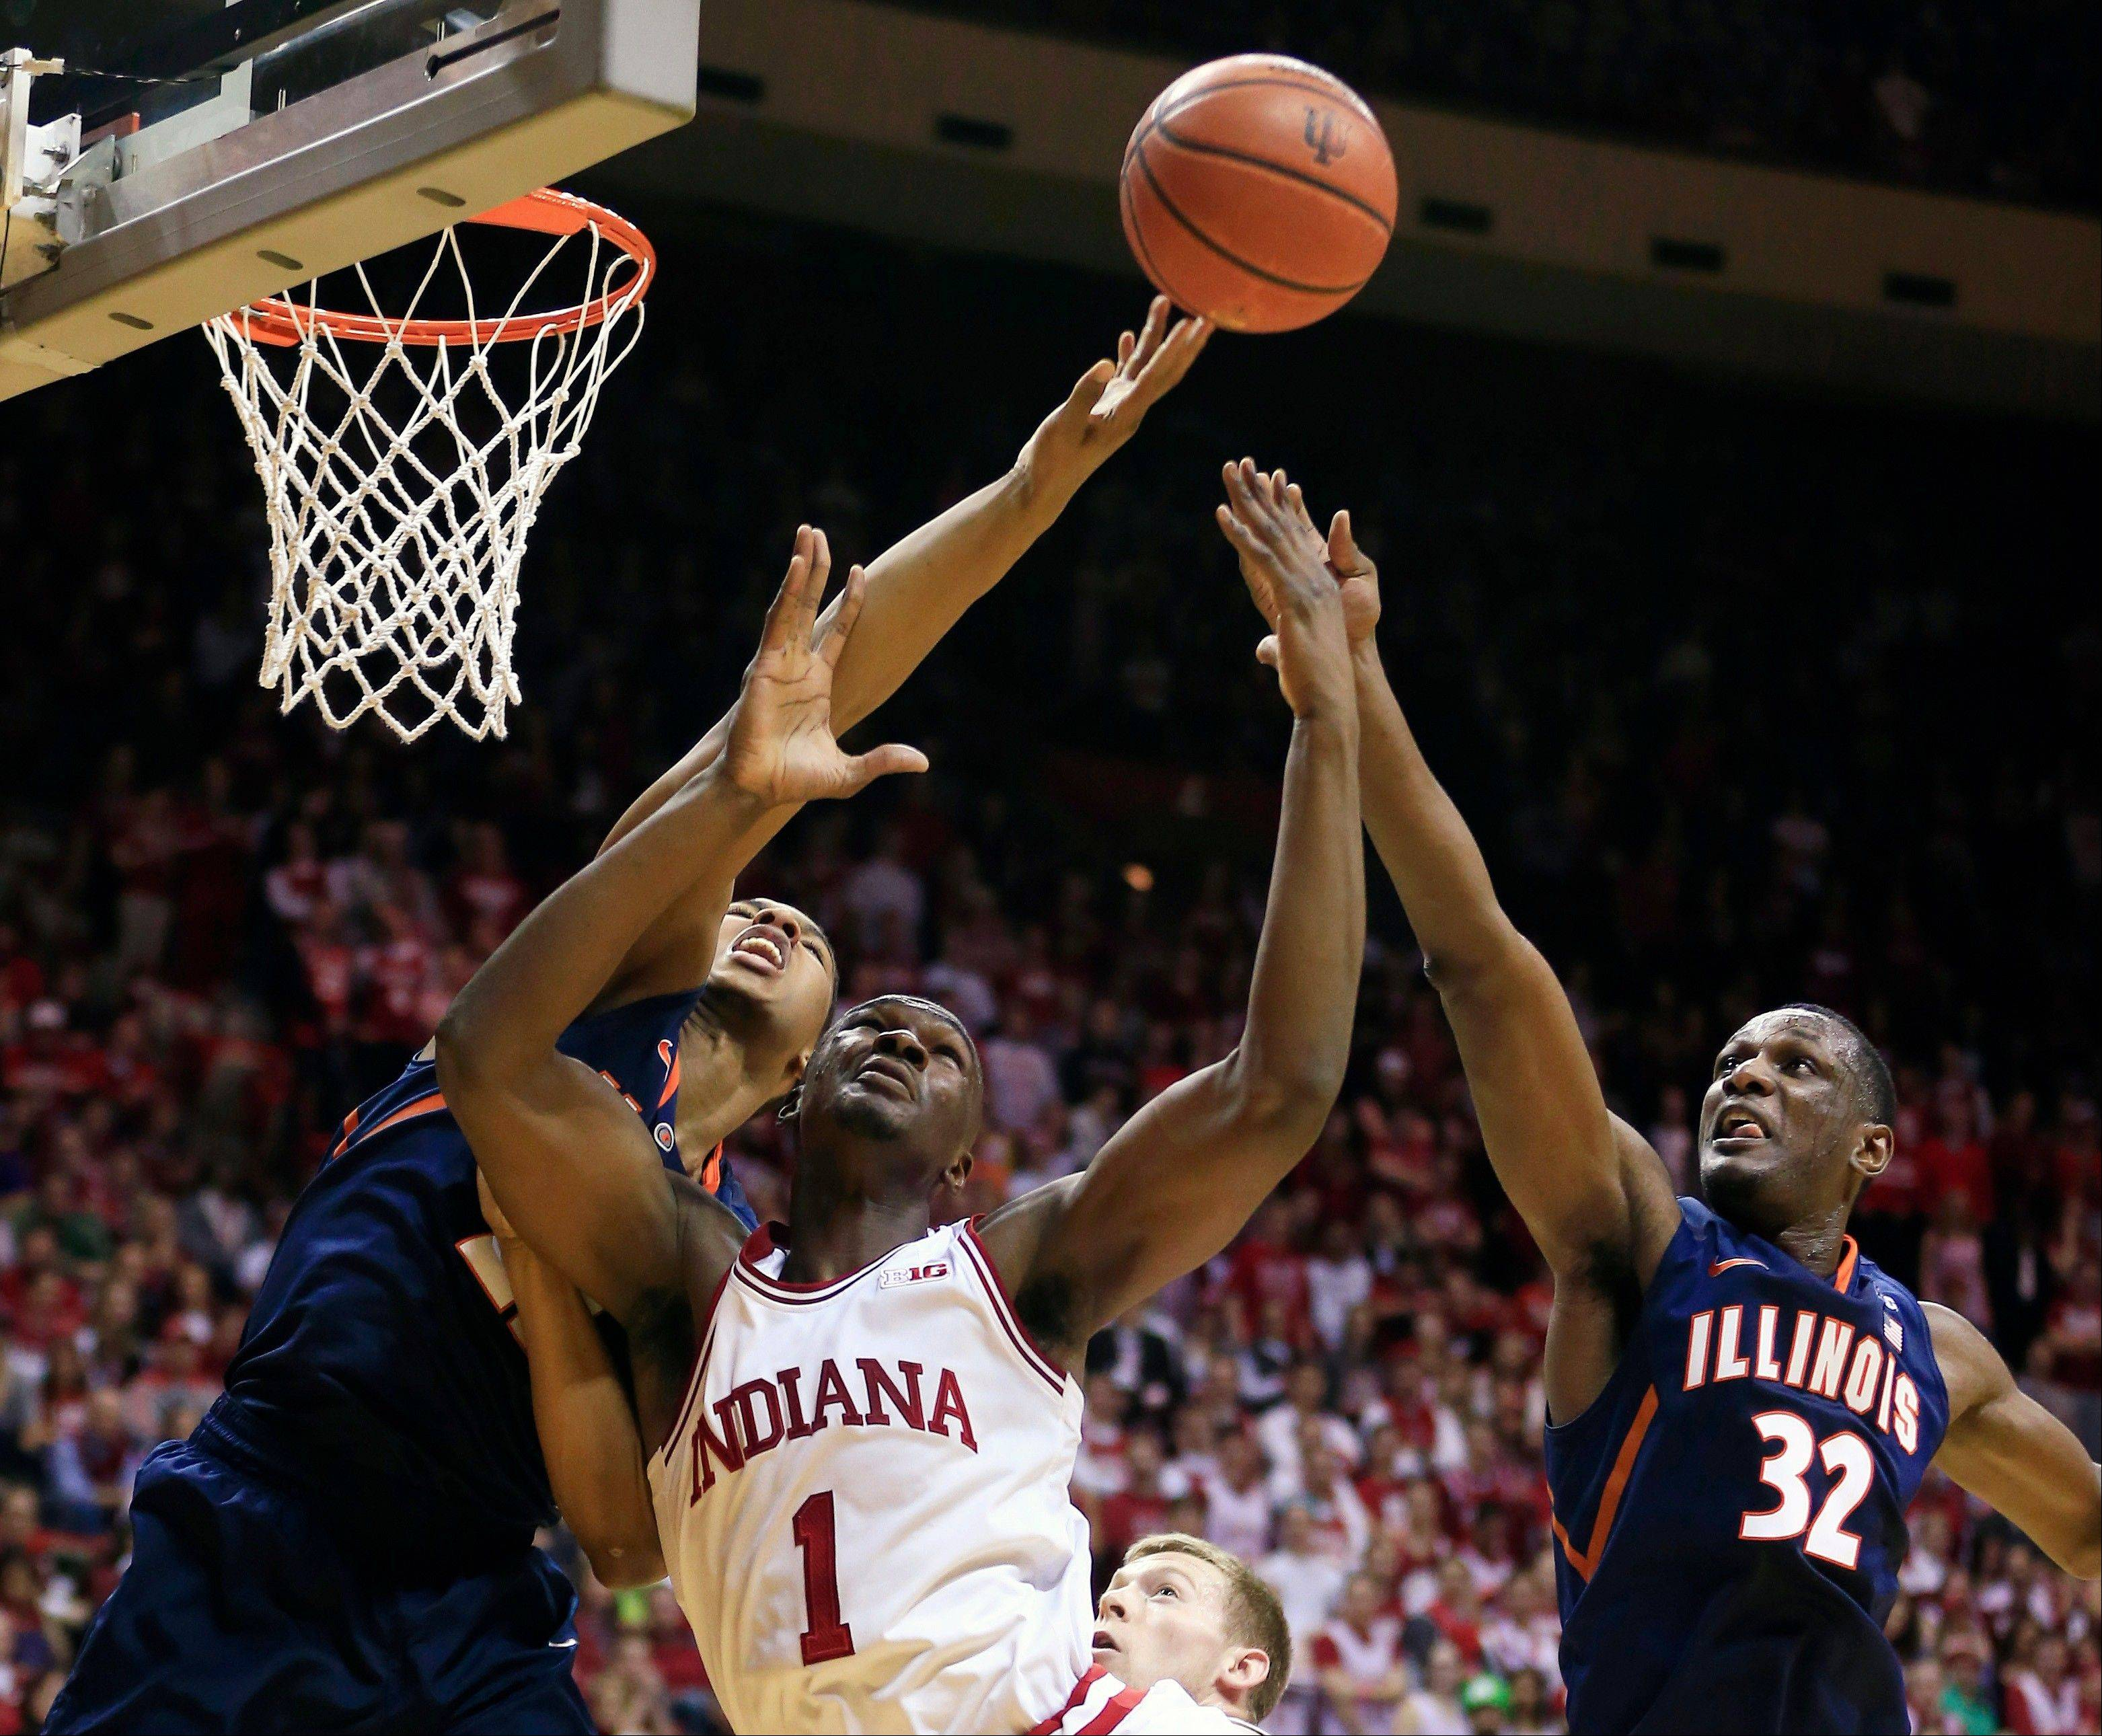 Indiana's Noah Vonleh (1) battles of a rebound against Illinois' Malcolm Hill (21) and Nnanna Egwu (32) during the first half of an NCAA college basketball game, Sunday, Jan. 26, 2014, in Bloomington, Ind.